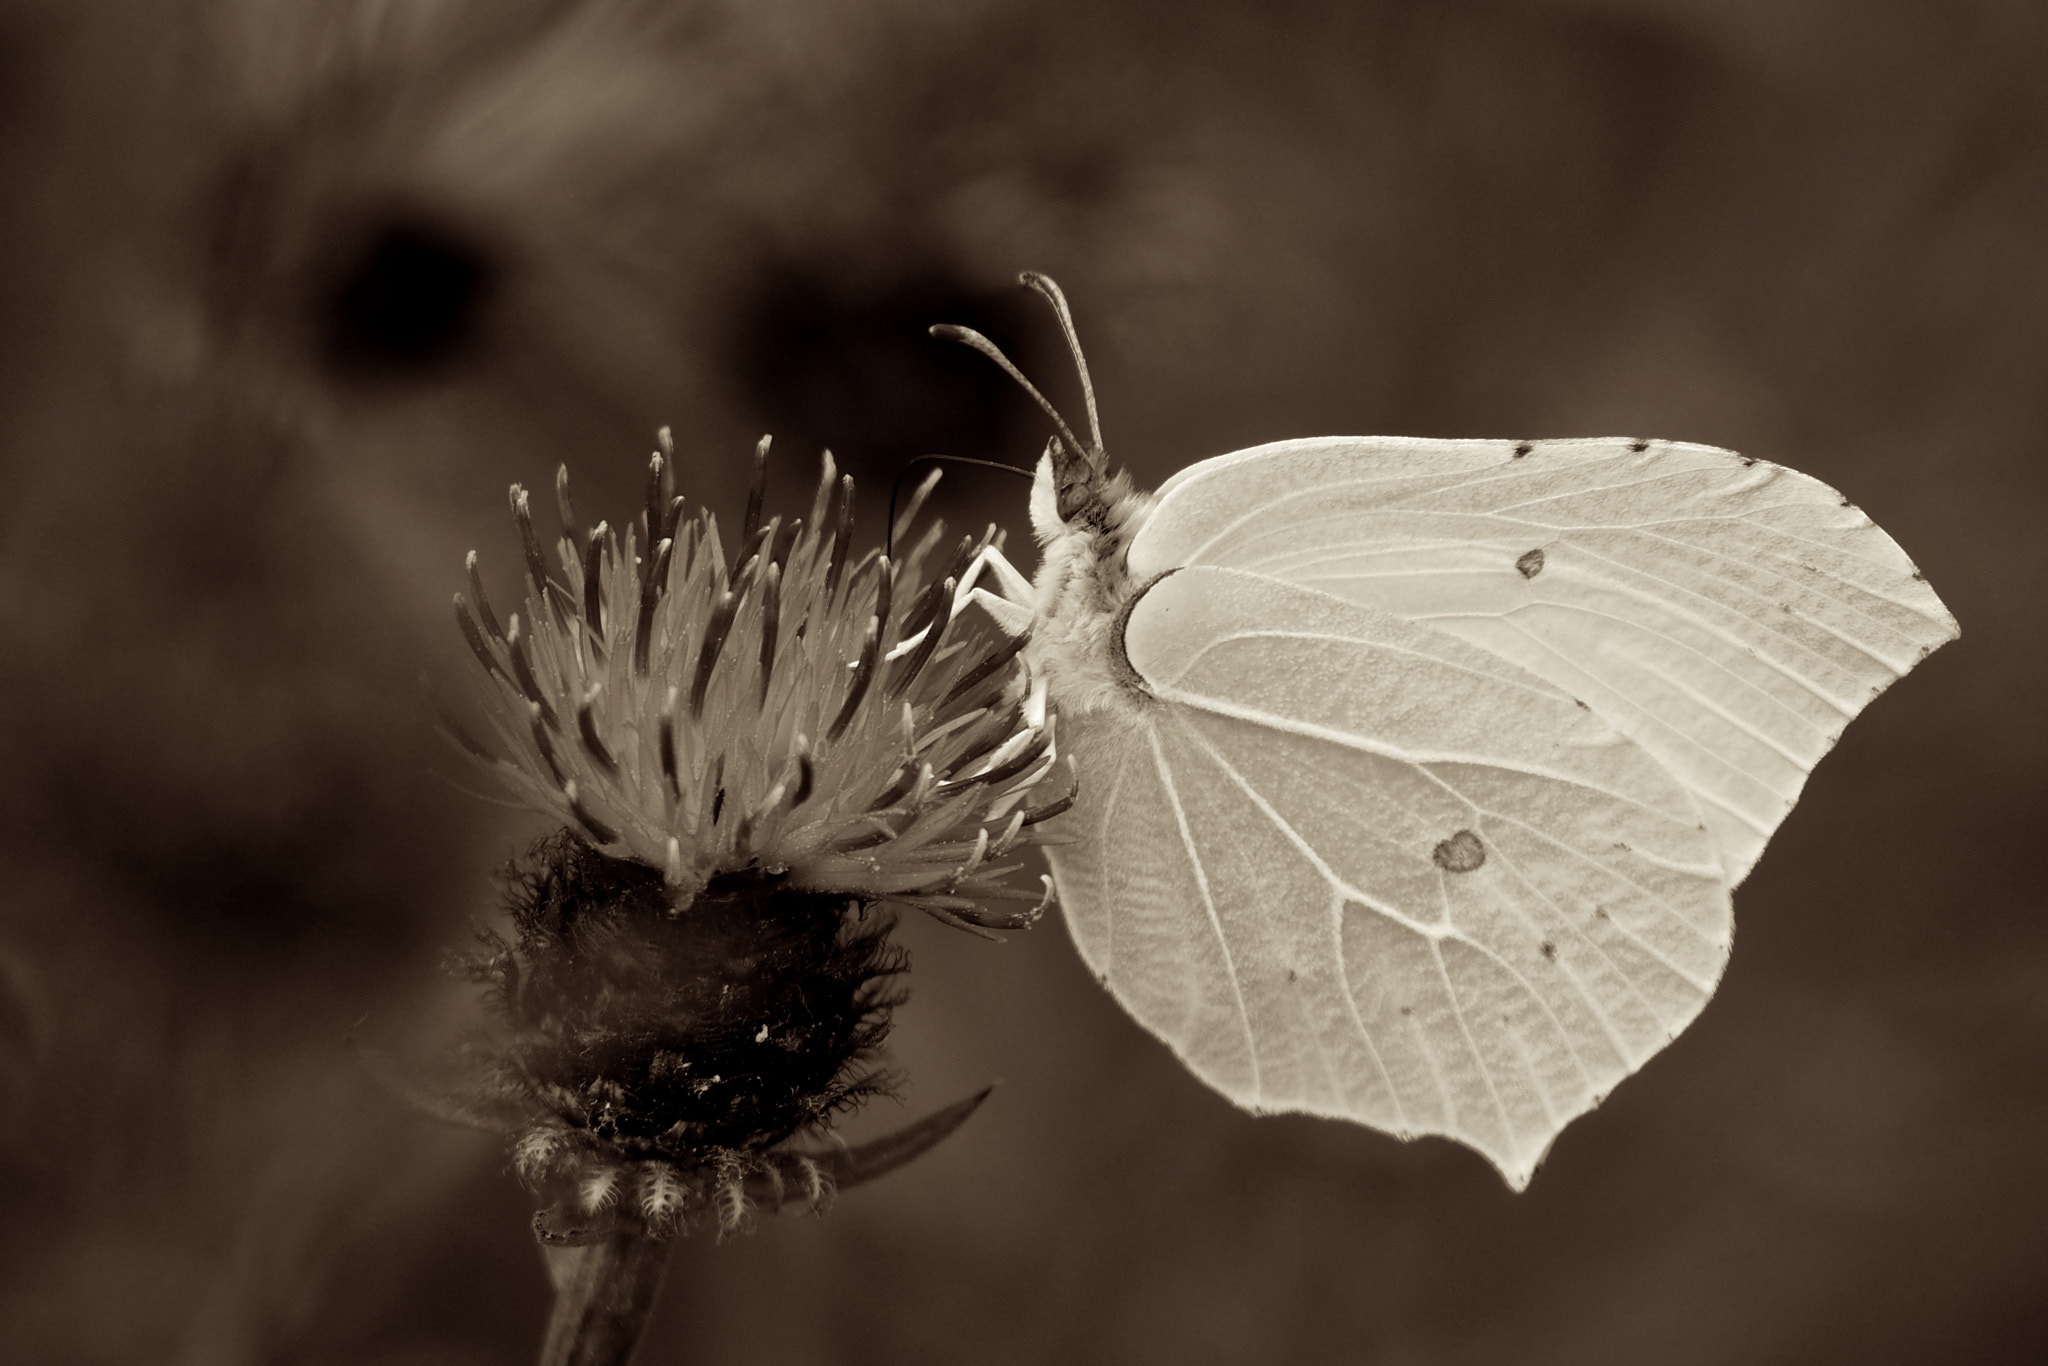 Photograph Brimstone by John Purchase on 500px